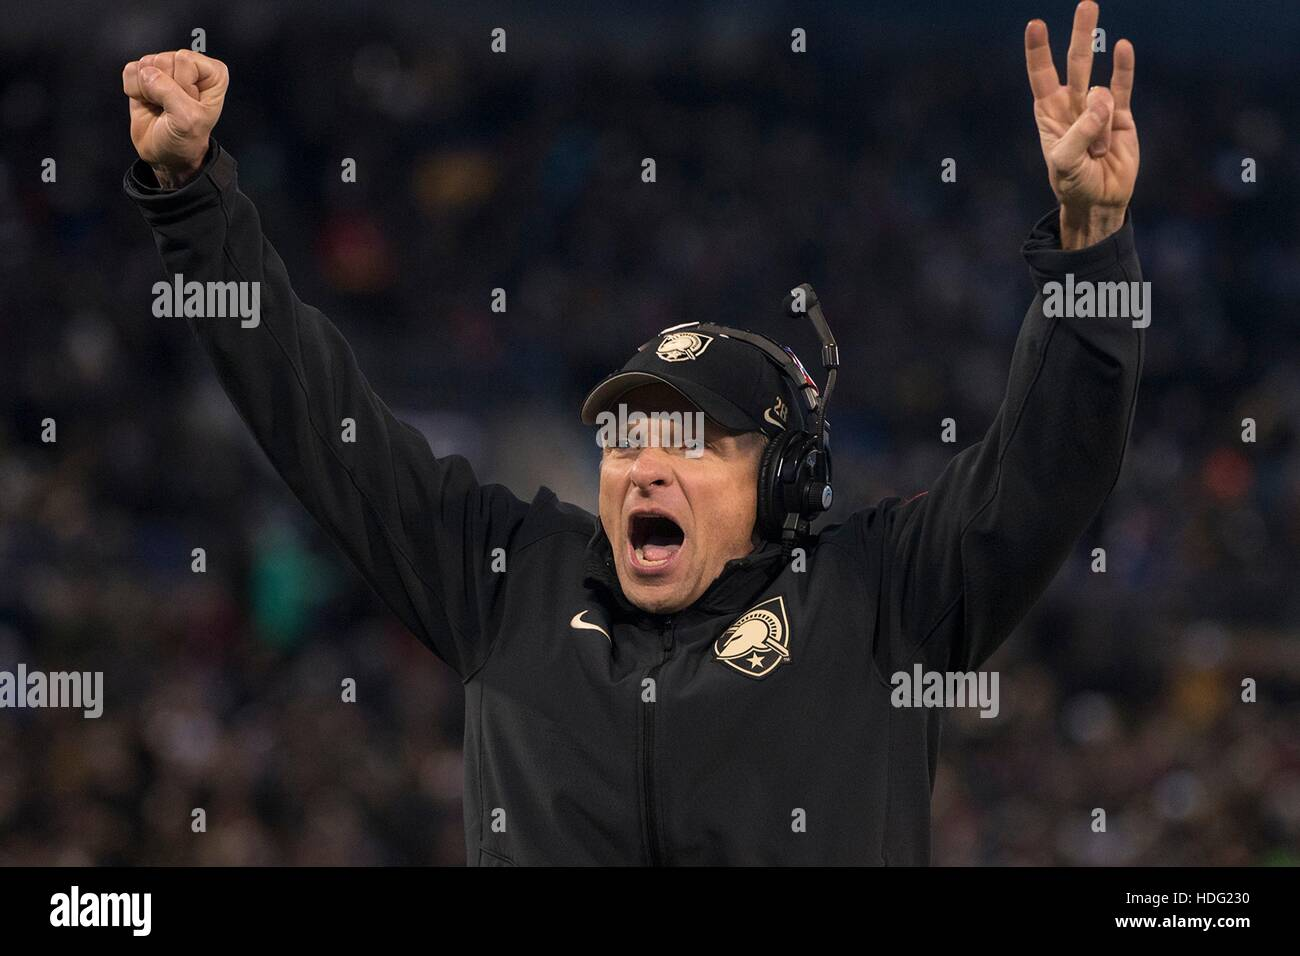 Army West Point Head Coach, Jeff Monken celebrates after winning the 117th Army Navy Game at M&T Bank Stadium - Stock Image